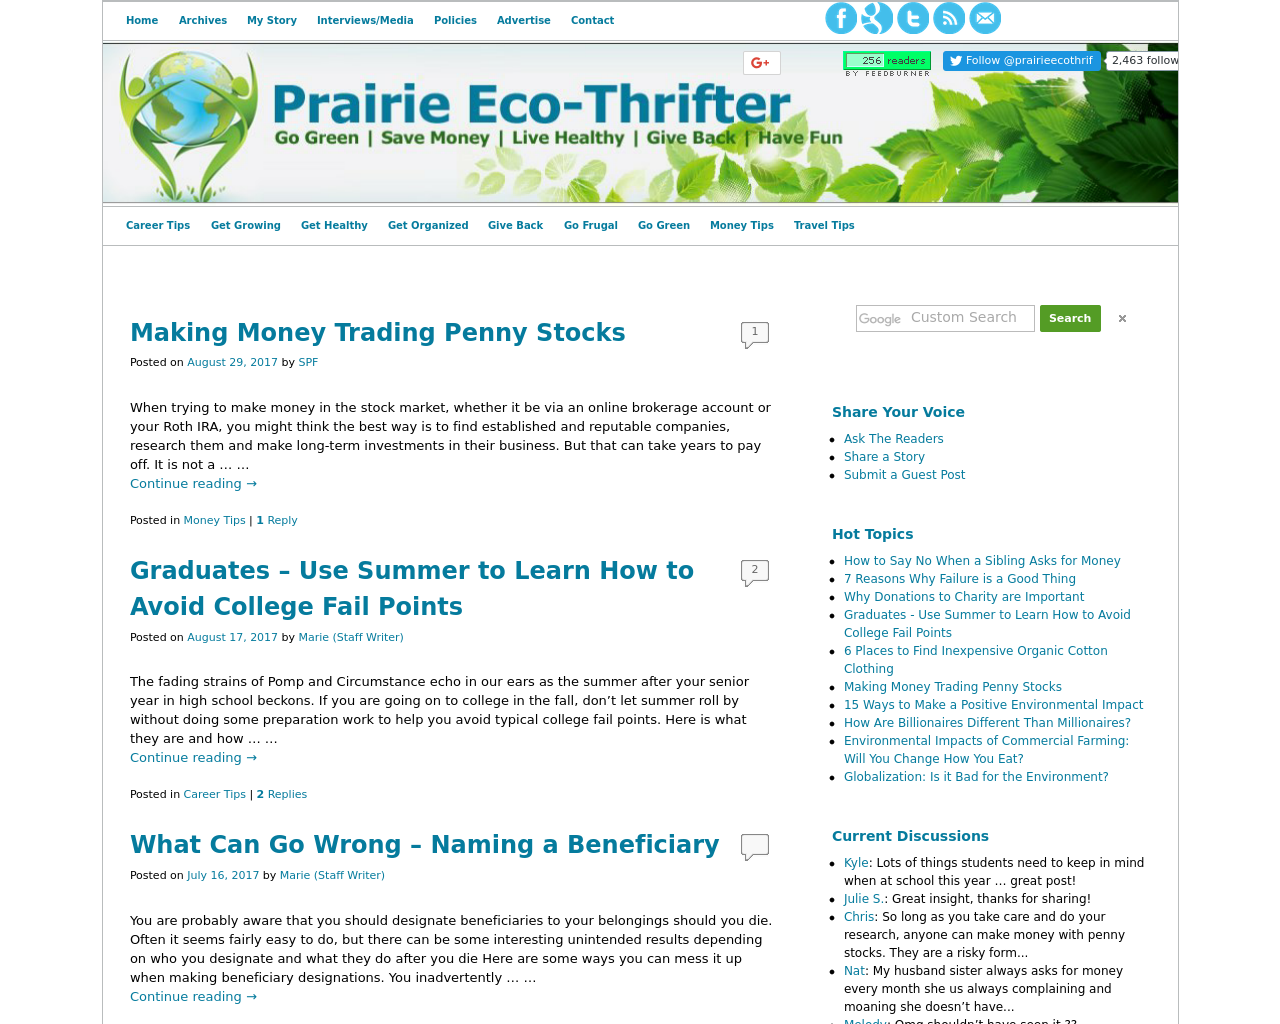 Prairieecothrifter-Advertising-Reviews-Pricing